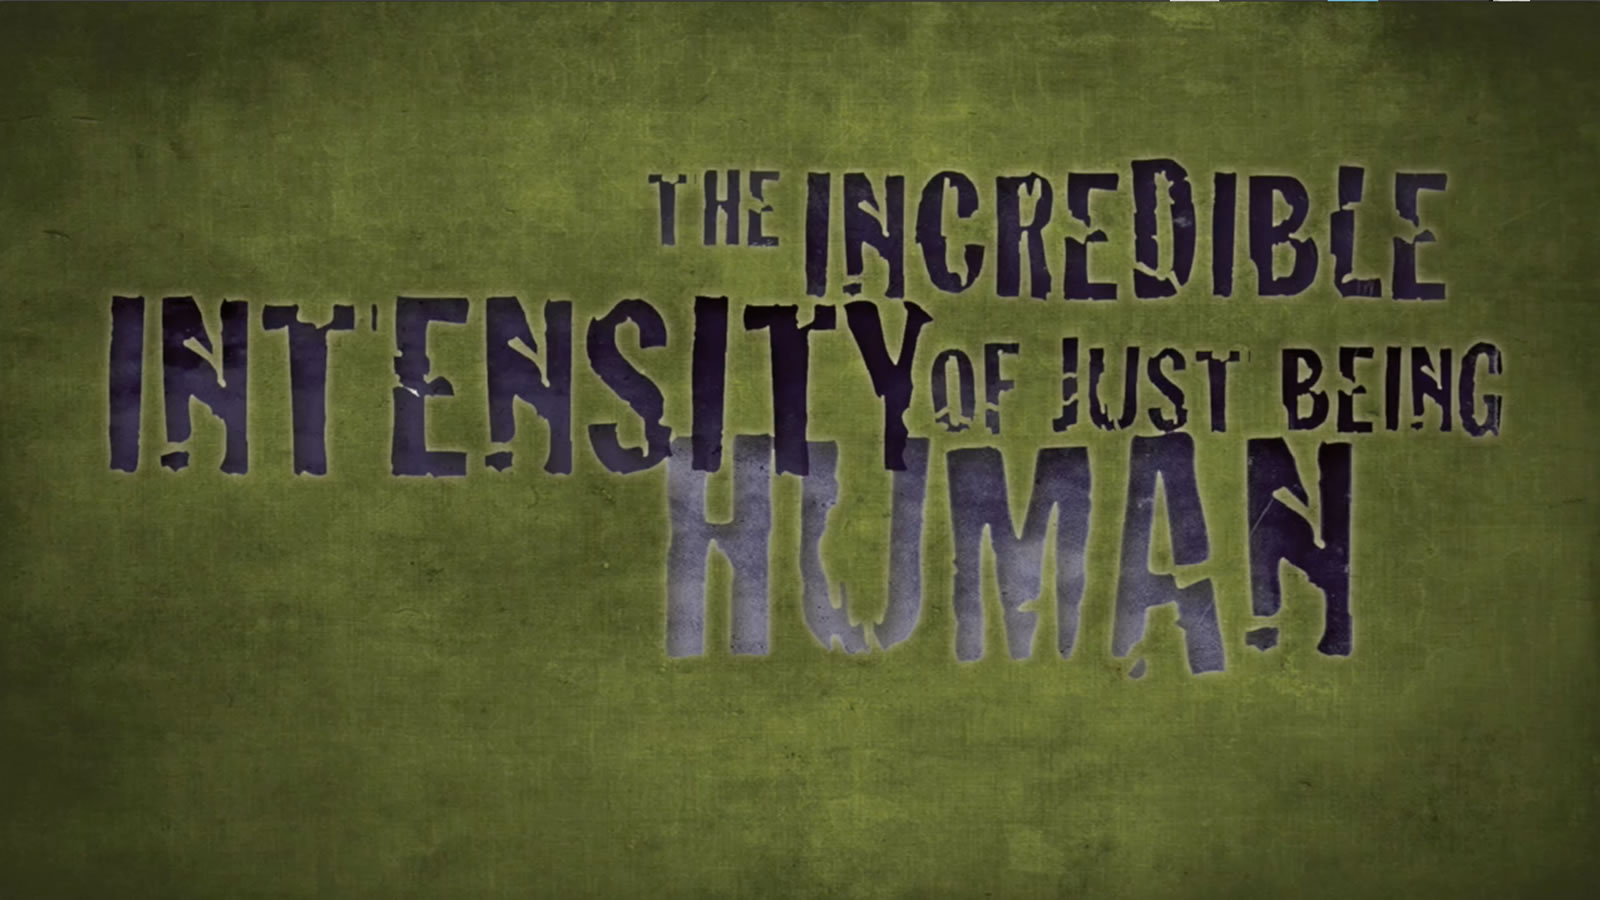 Incredible Intensity of Just Being Human Poster Slide